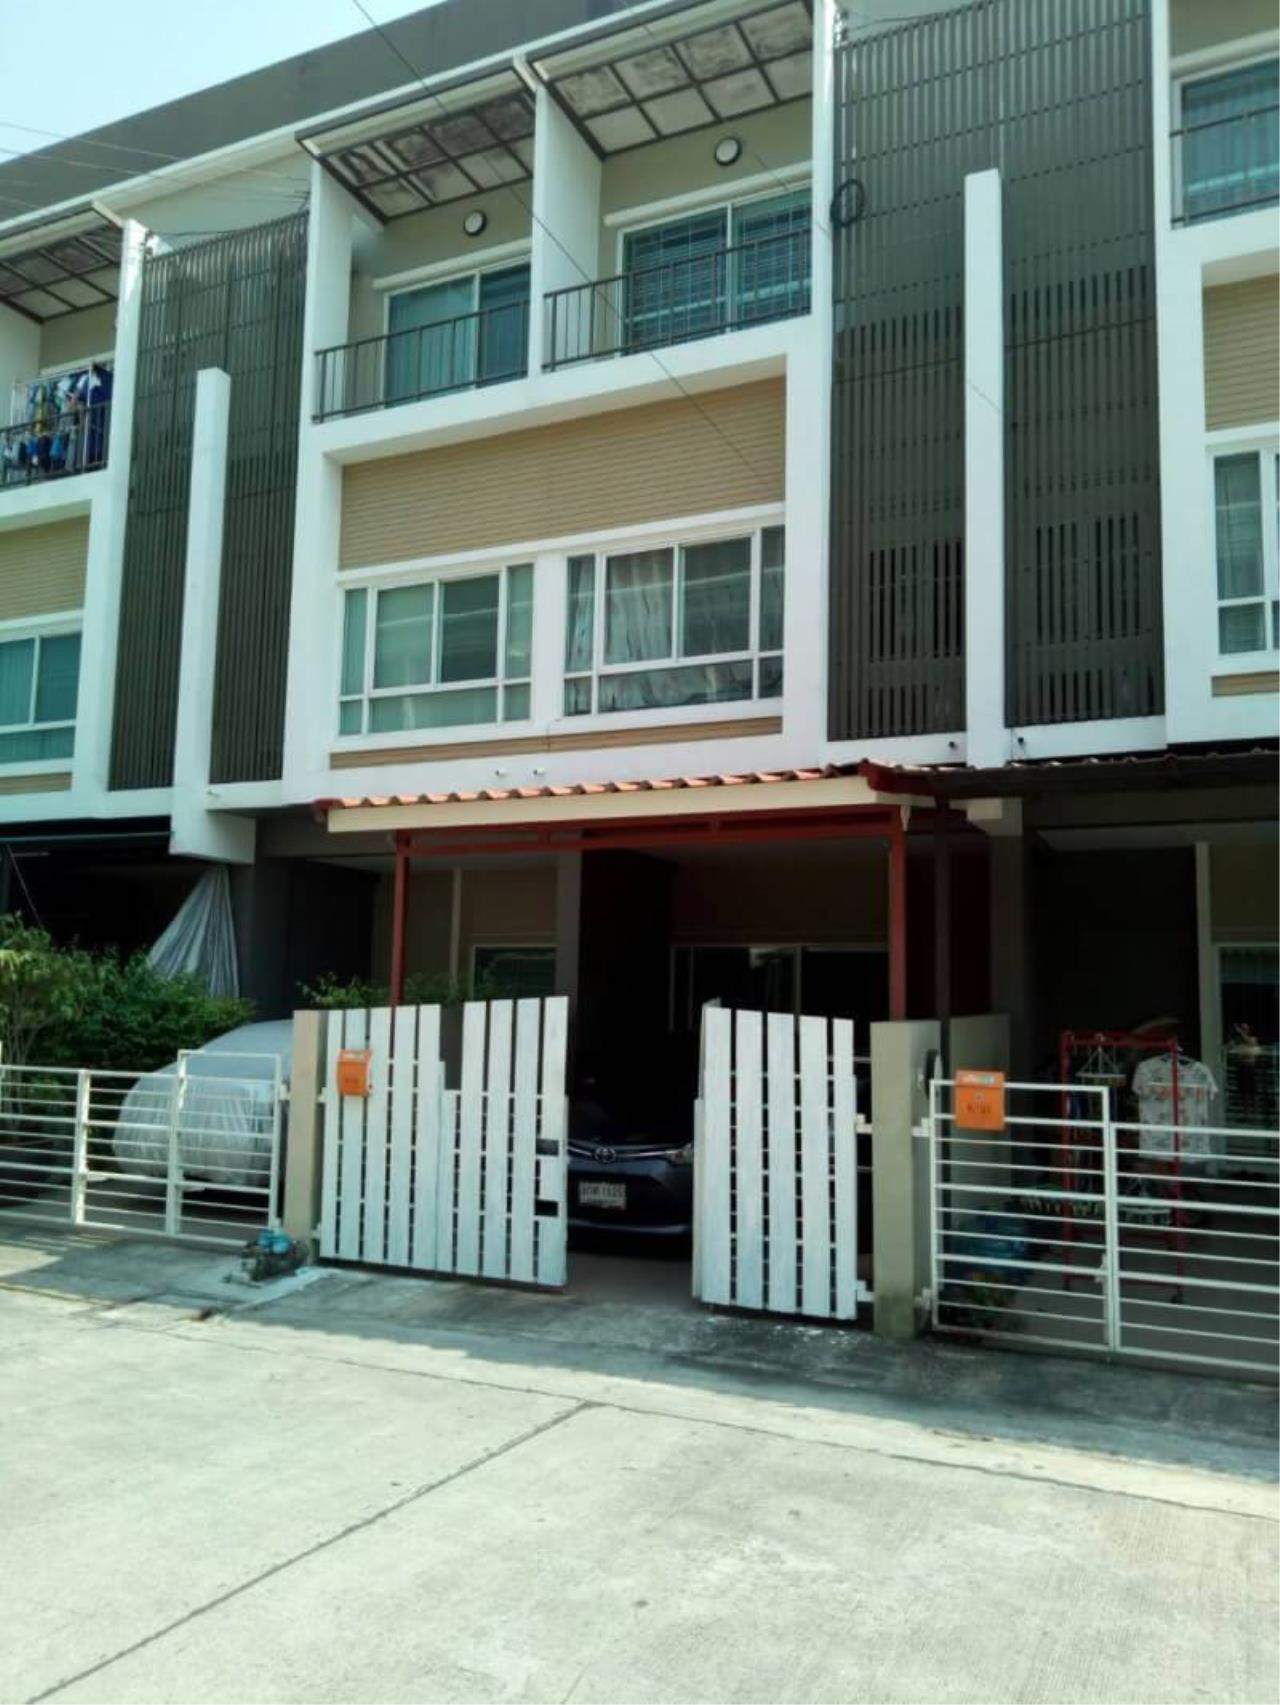 RE/MAX All Star Realty Agency's Townhouse Nalin Avenue 2 (Ramkamhaeng) for sale 1